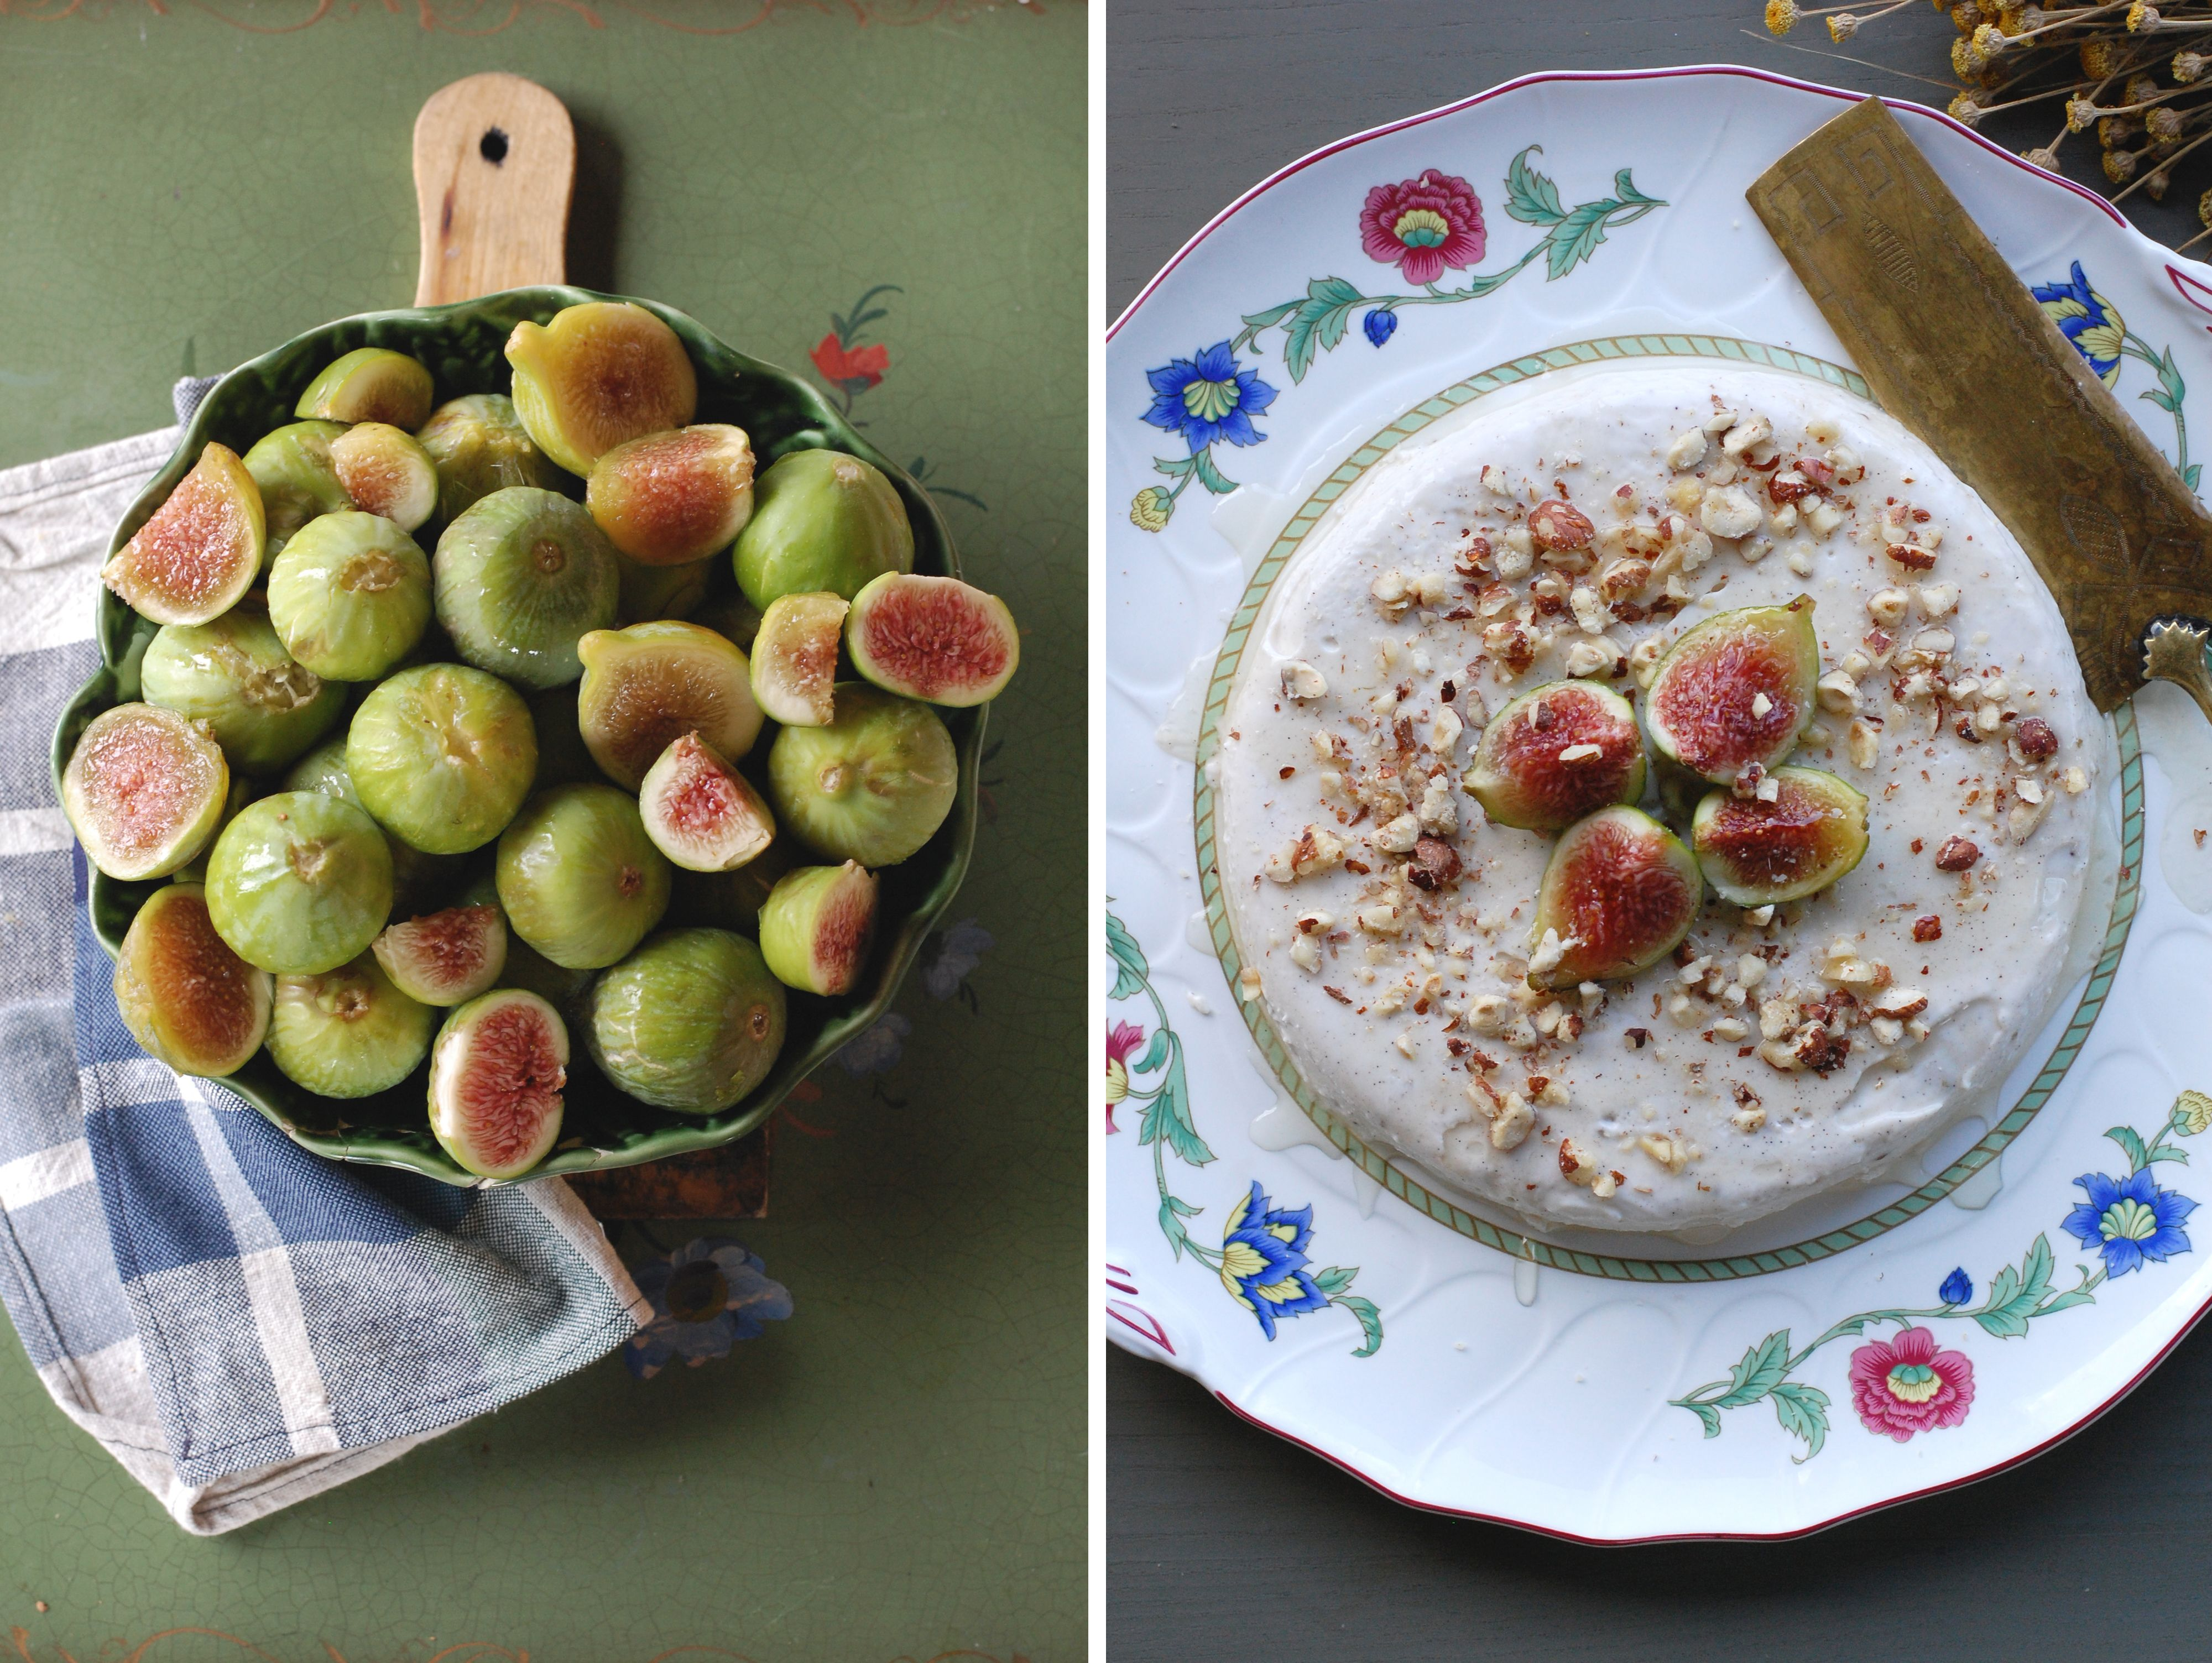 Figs / Panna Cotta with honey and nuts